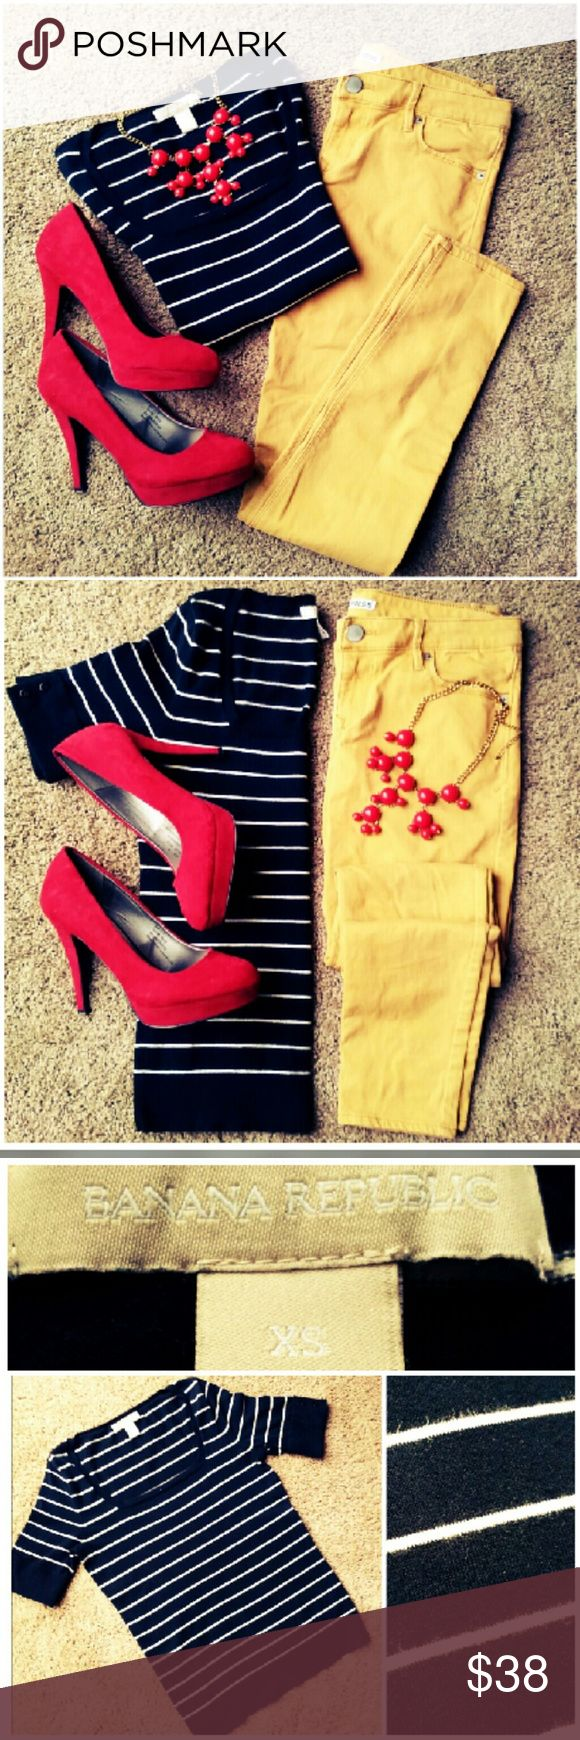 Outfit Bundle ~ Banana Republic & Express Outfit bundle! Get the look for one low price! Included in this listing are:  ~Black and white stripe short sleeve sweater by Banana Republic. Square scoop neck. Cute button detail at sleeves. Size XS.   ~Very soft goldenrod skinny pants by Express. Size 4. Very faint horizontal lines toward bottom of legs in back due to wearing with booties. Very light crease lines. See close up pics. Not noticable unless inspected closely.   Please note: Necklace…